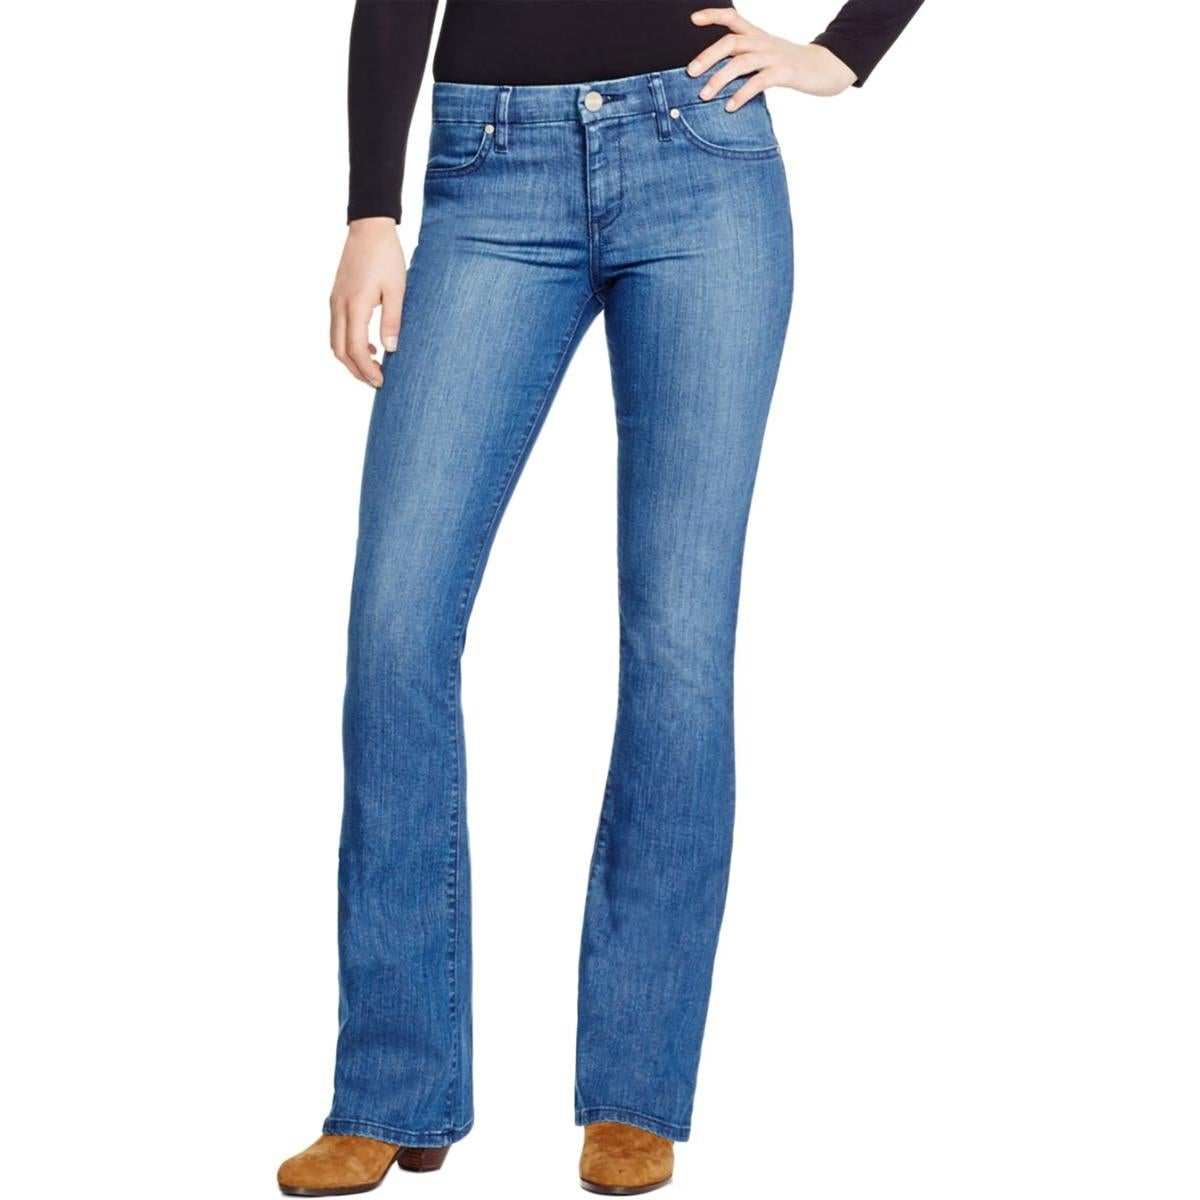 Sanctuary Womens Alexa Flare Jeans Mid-Rise Medium Wash - Thumbnail 3